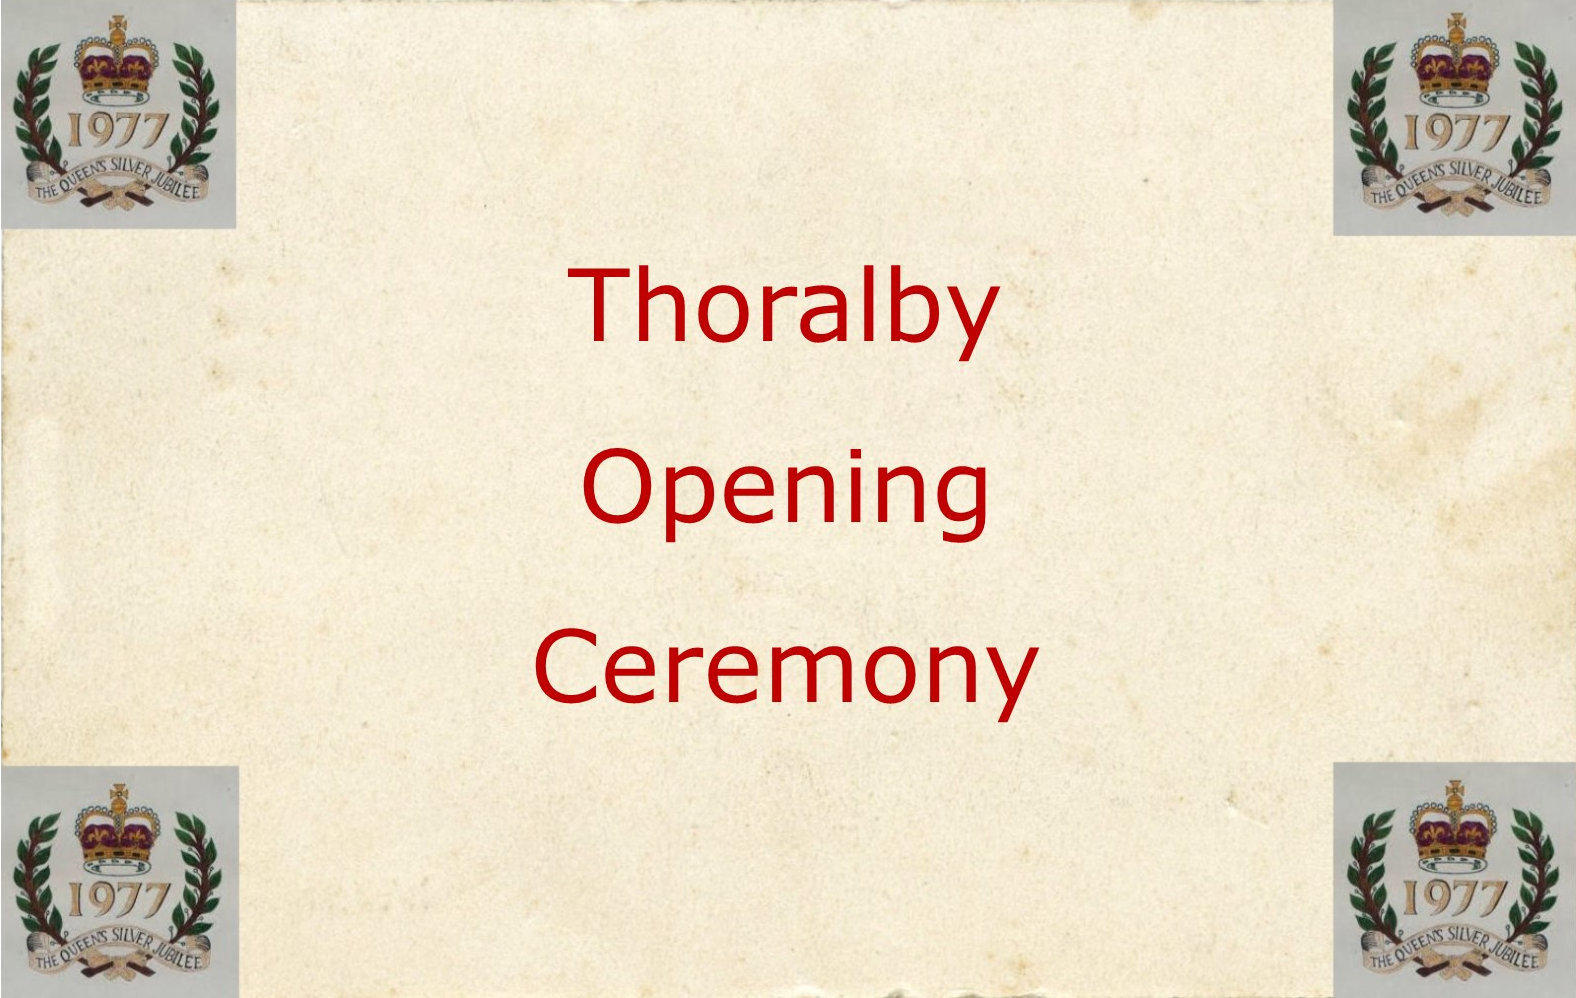 Thoralby Opening Ceremony